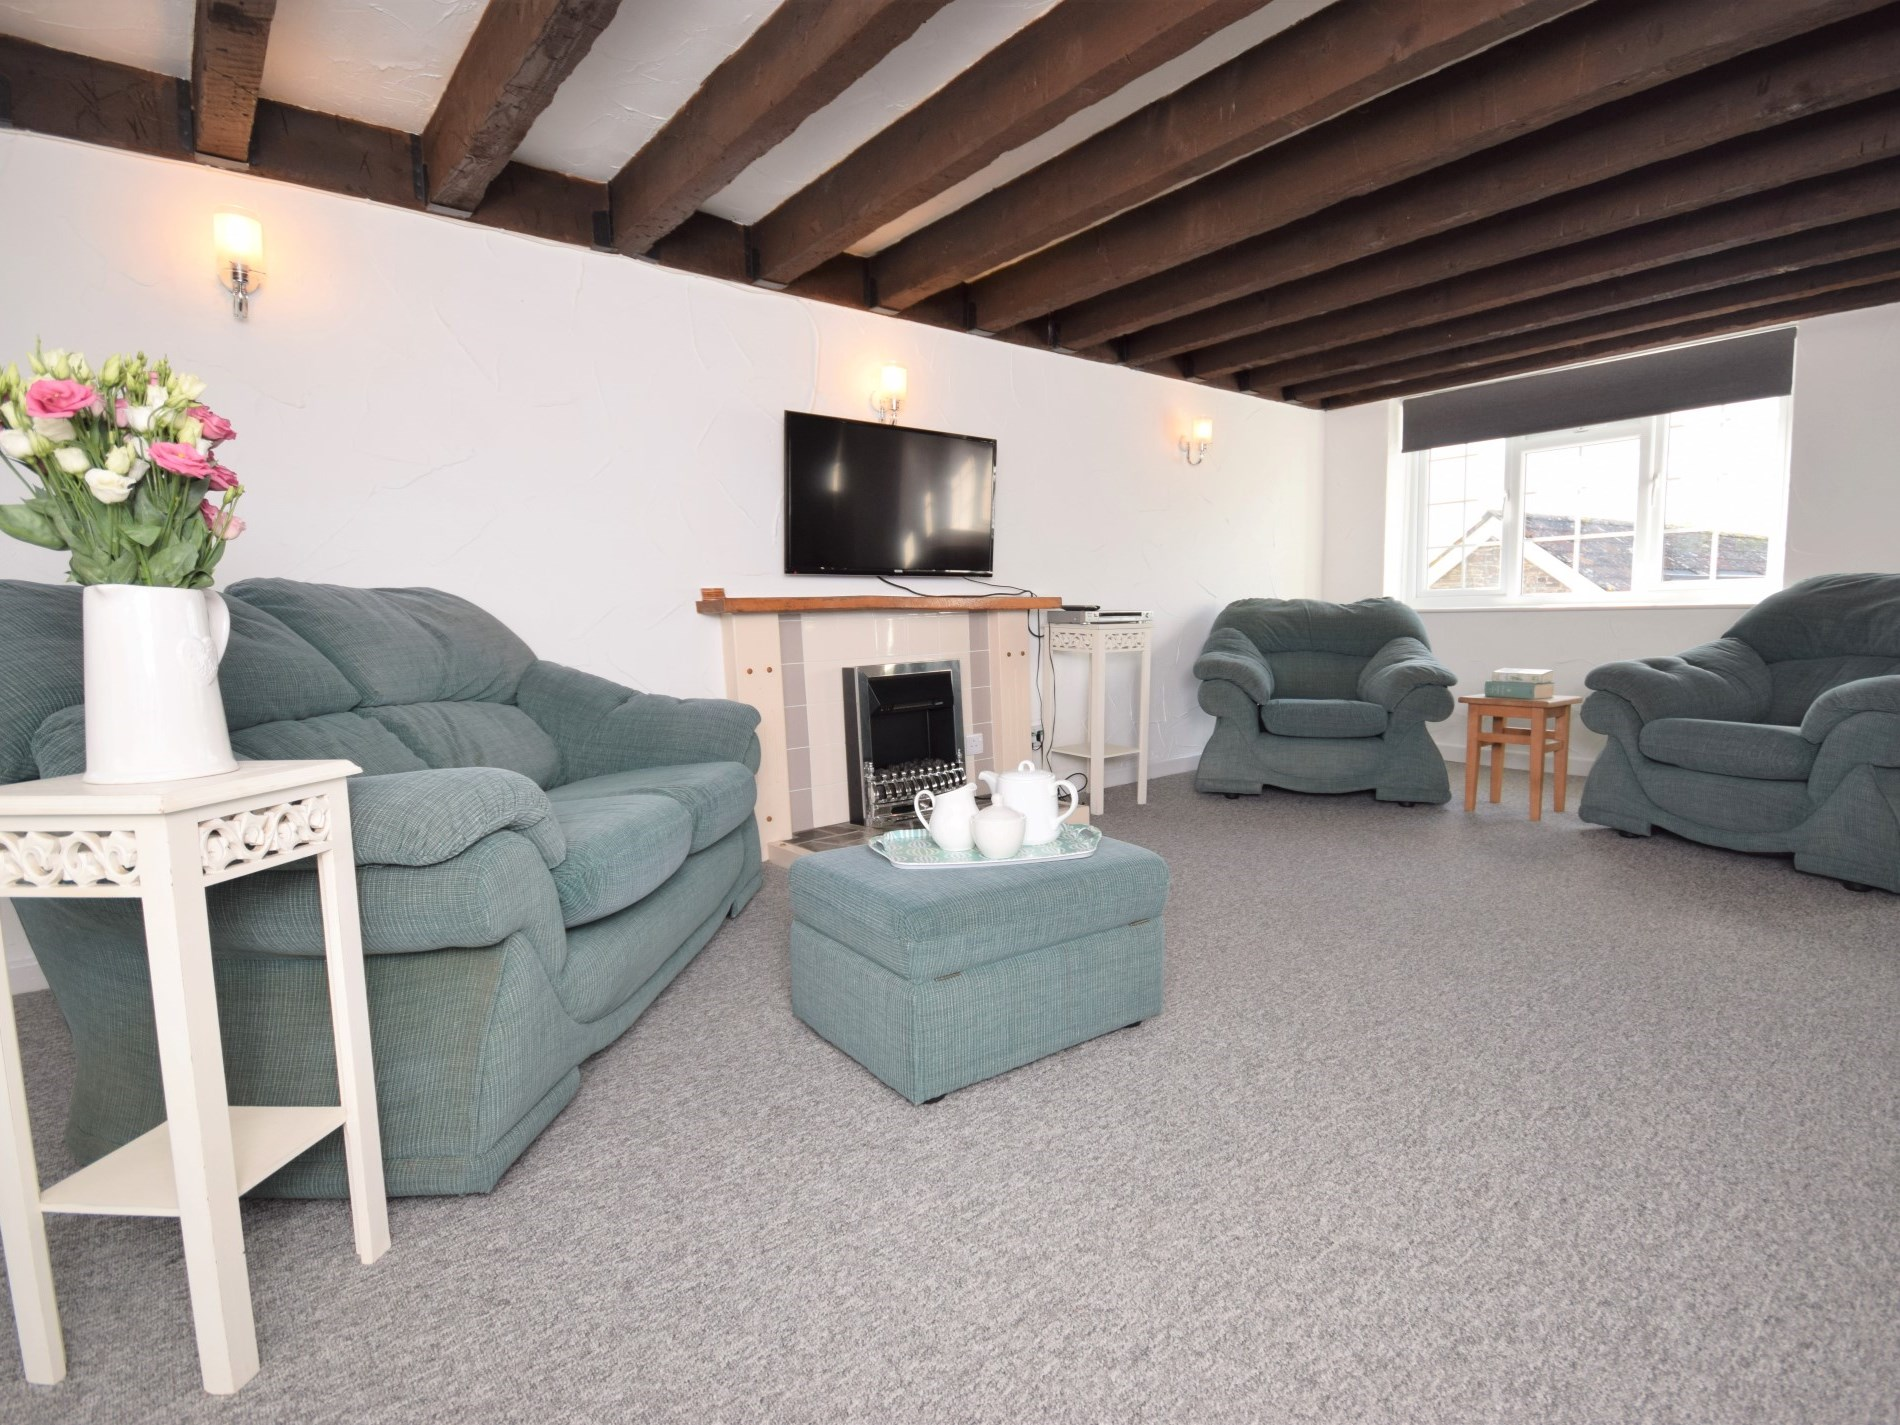 4 Bedroom Cottage in Bideford, Devon